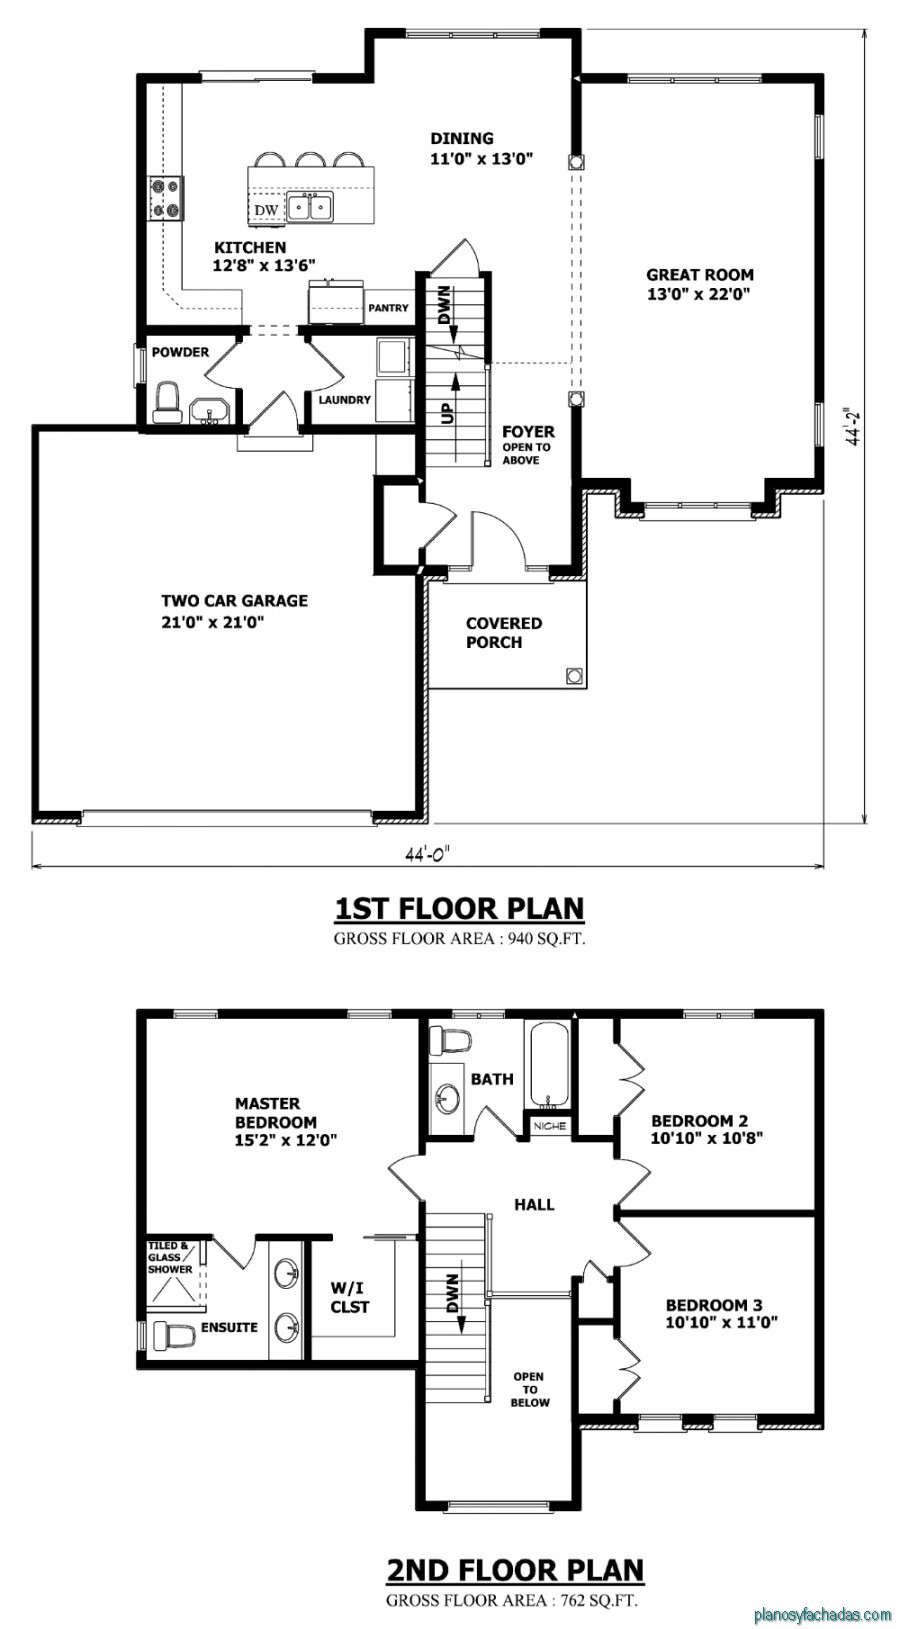 15 planos de casas peque as de dos pisos planos y for Small 2 story cottage plans